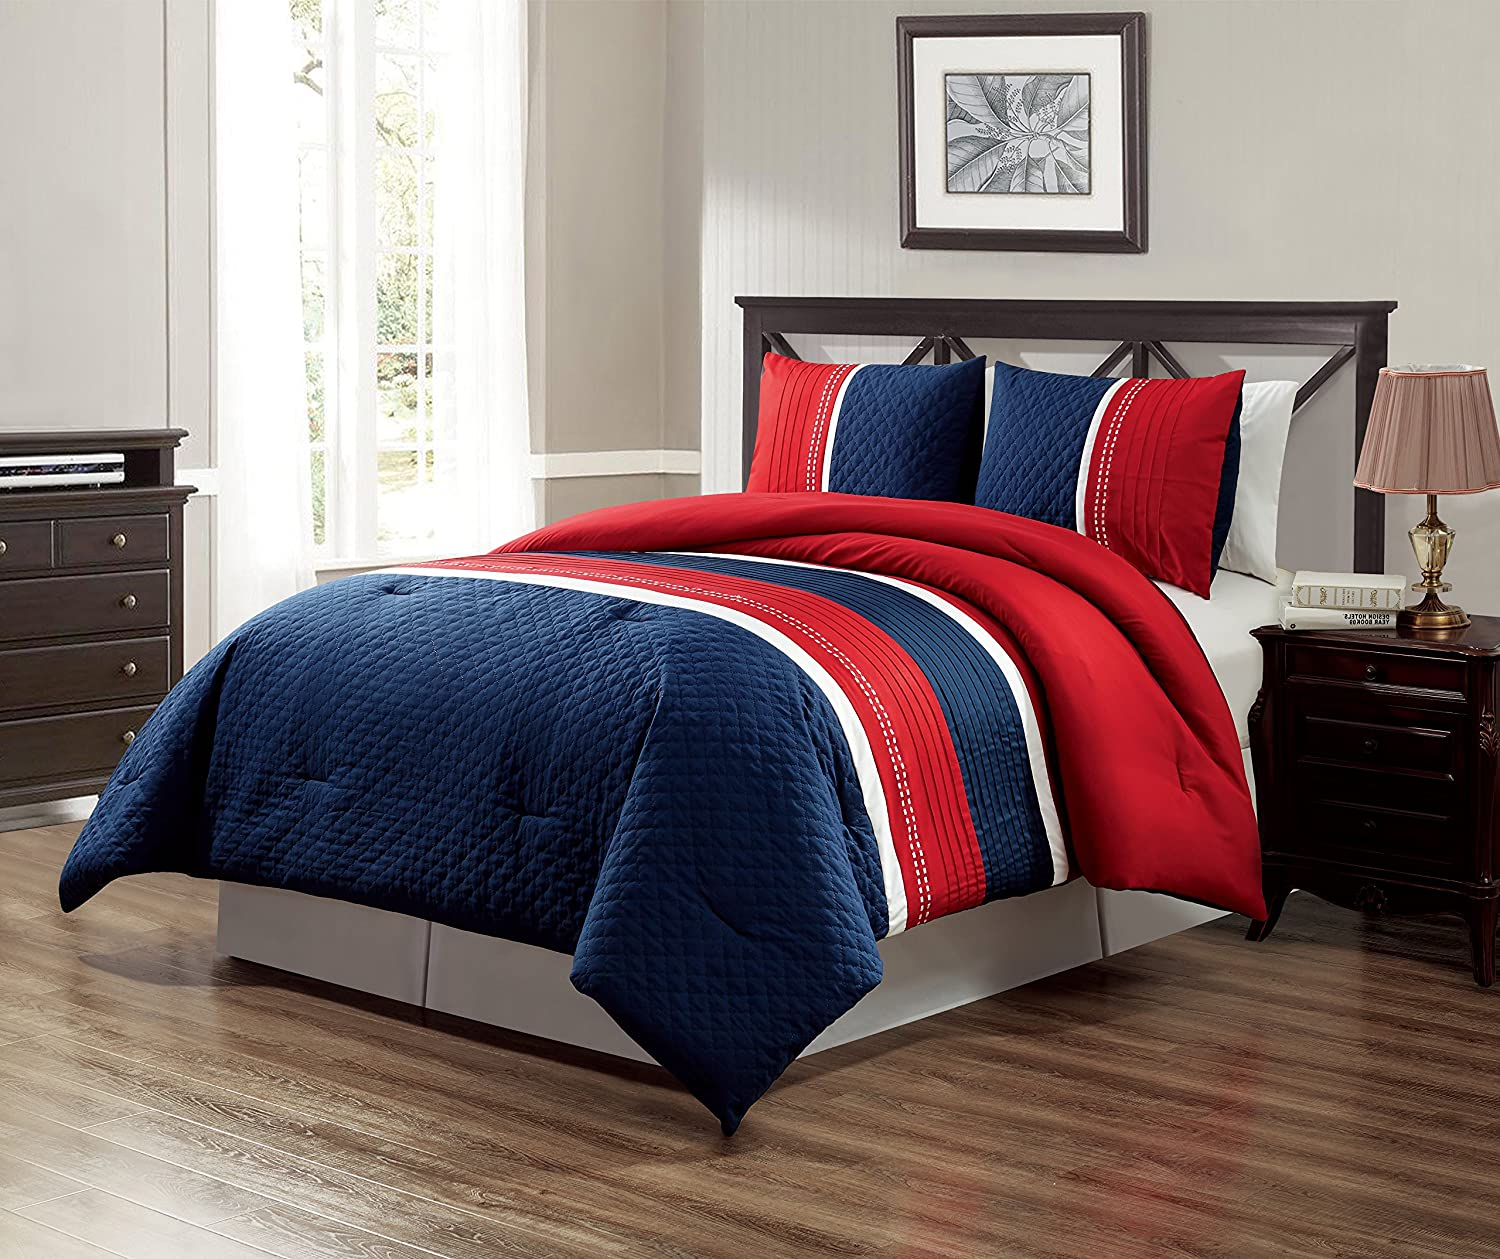 GrandLinen 7 Piece Navy Blue/Red/White Texas Lone Star Embroidery Western  Bed in A Bag Microfiber Comforter Set (Double) Full Size Bedding. Perfect  ...